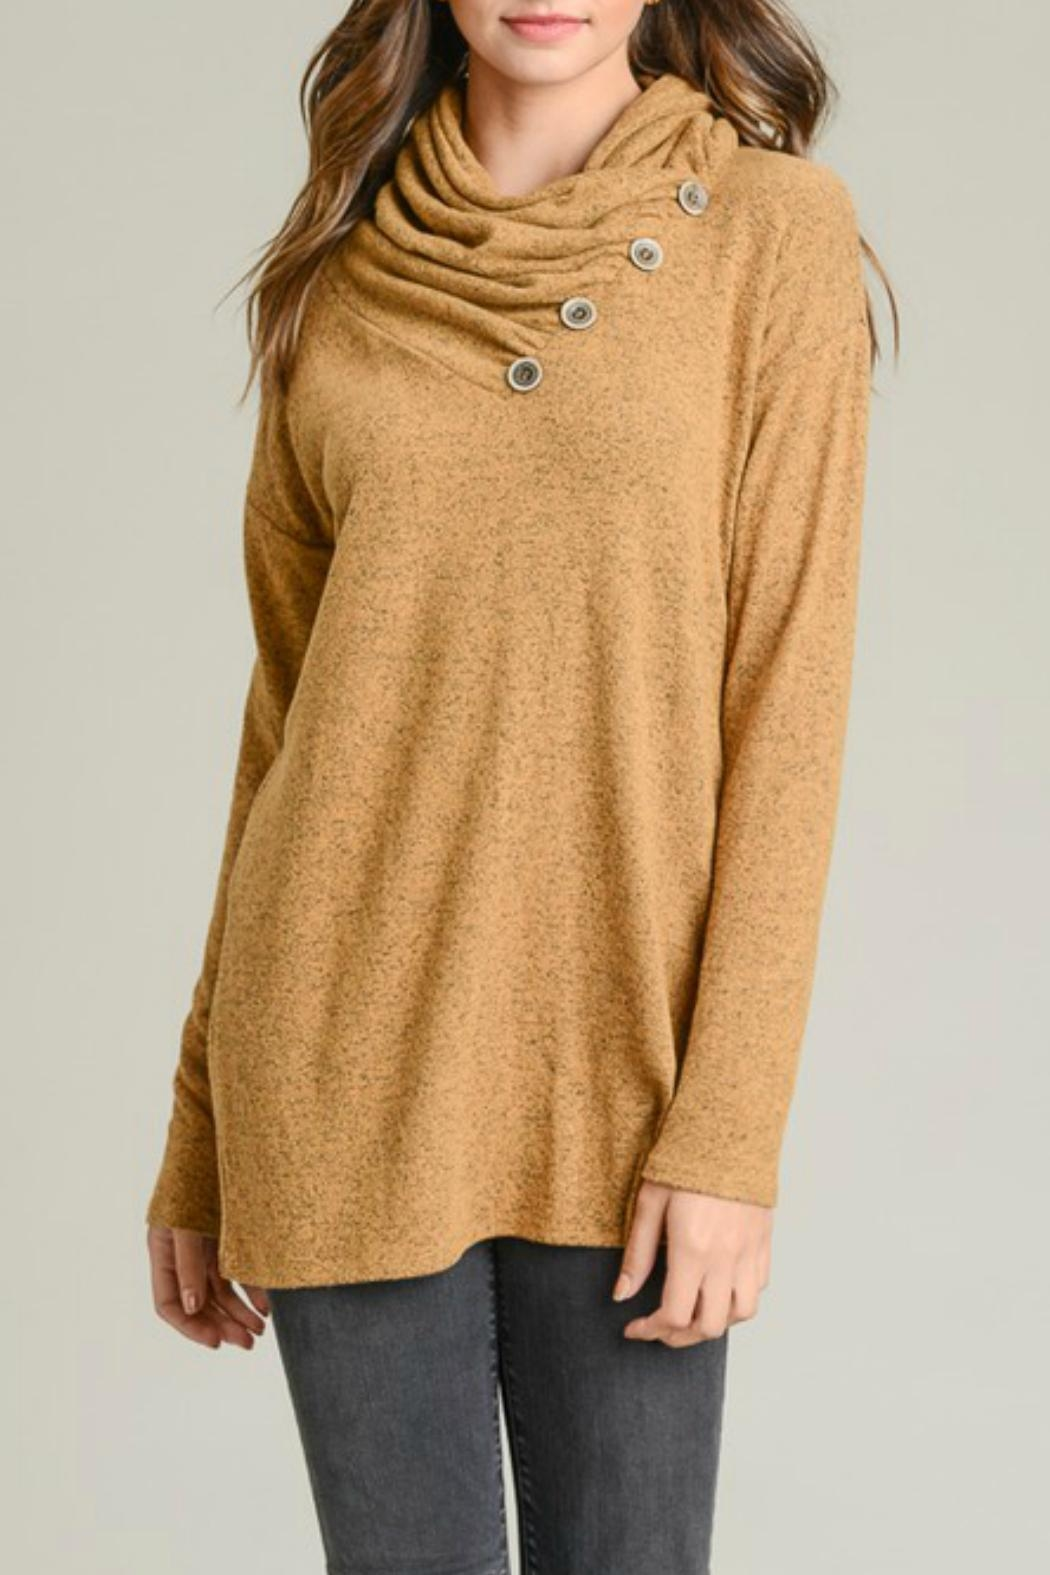 vanilla bay Button-Detail Tunic Top - Front Cropped Image